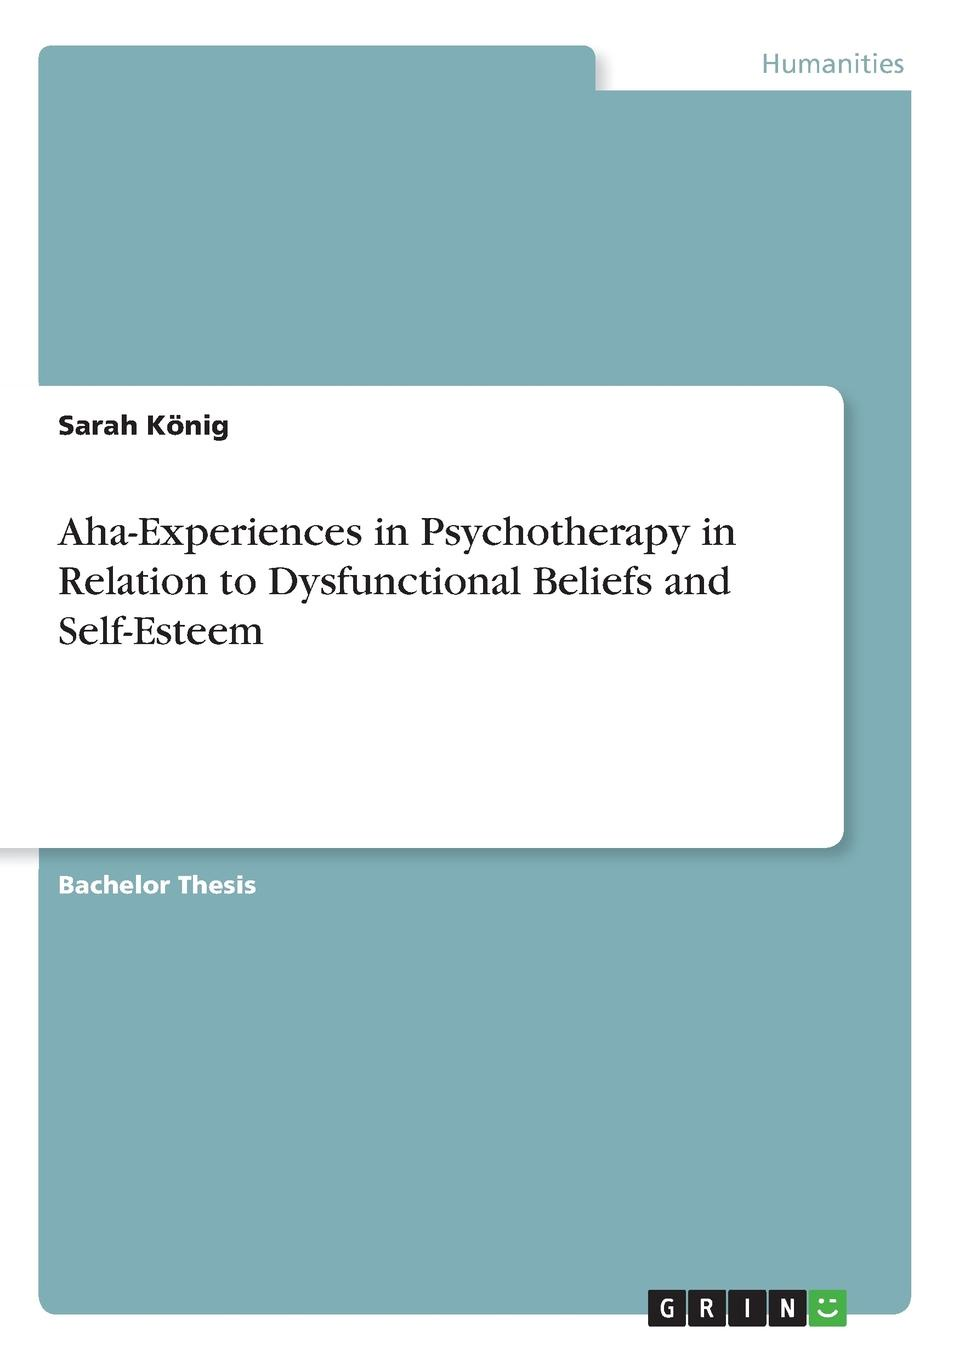 Sarah König Aha-Experiences in Psychotherapy Relation to Dysfunctional Beliefs and Self-Esteem